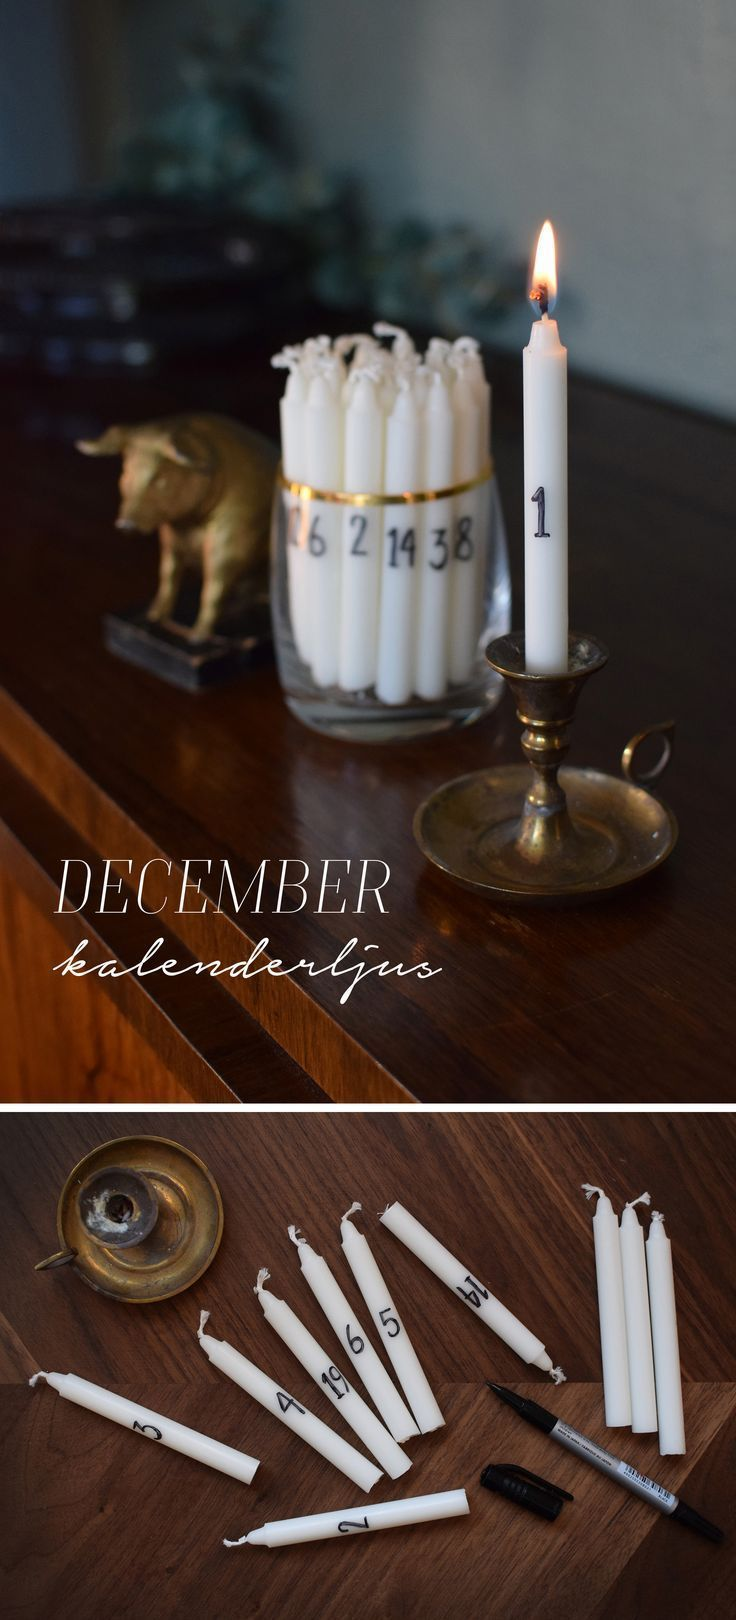 Bougie De L Avent Danoise white candles with the date on it to count down to